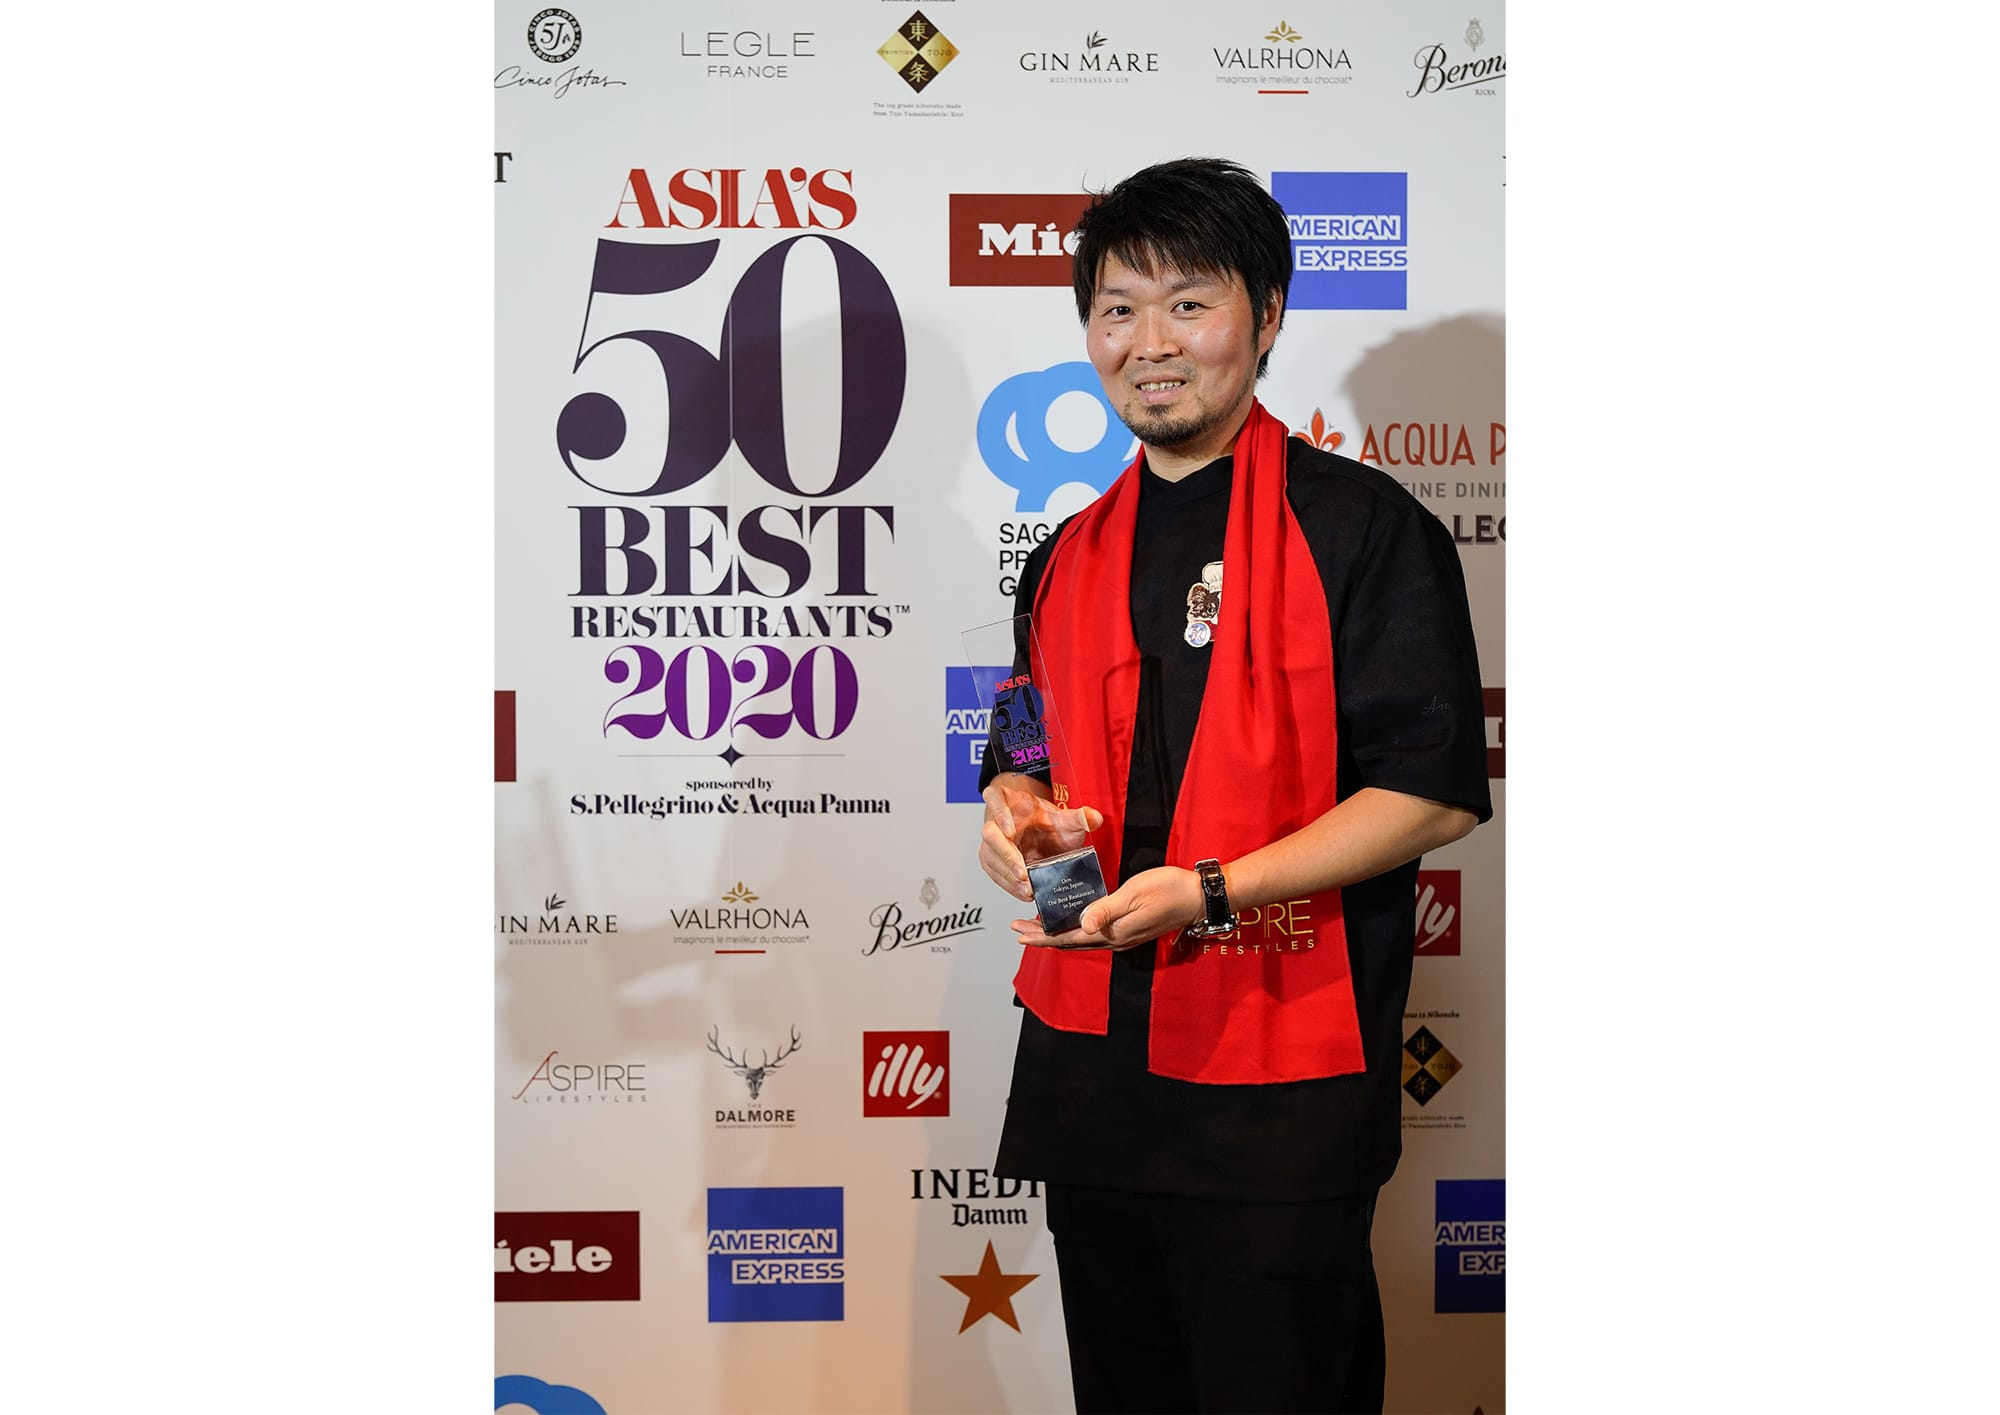 """Zaiyu Hasegawa, the head chef of Den was awarded the title of Japan's Best Restaurant for three years in a row. On the stage, before addressing any words of joy, Hasegawa said, """"I pray that the chefs around the world will be in a better situation as soon as possible""""."""